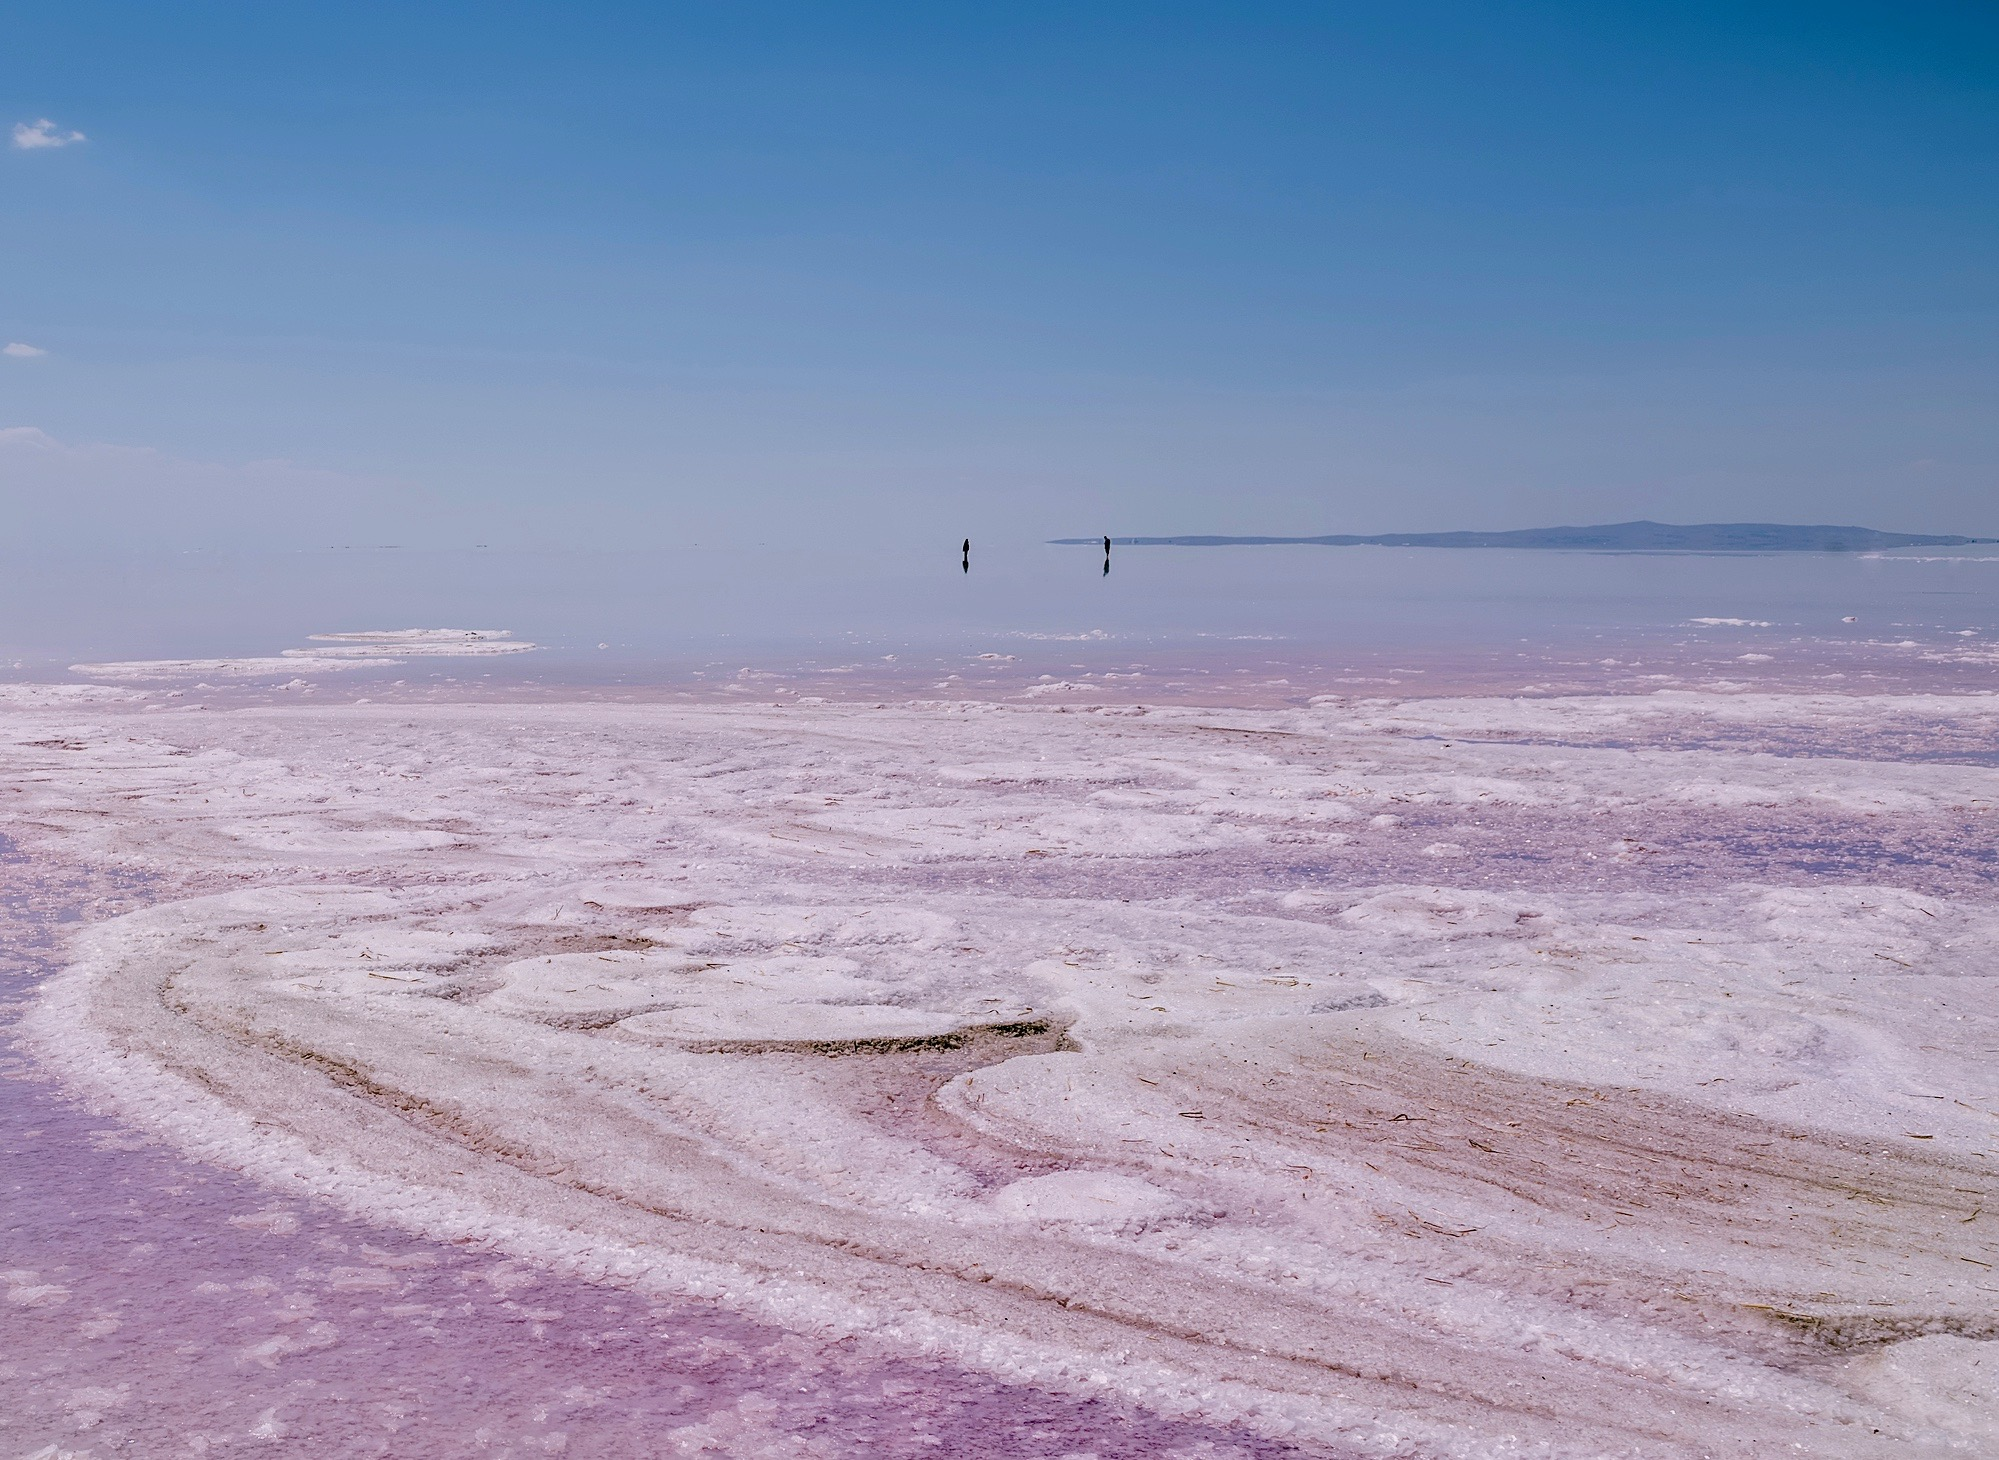 Tuz Gölü – Pink Salt Lake, Turkey